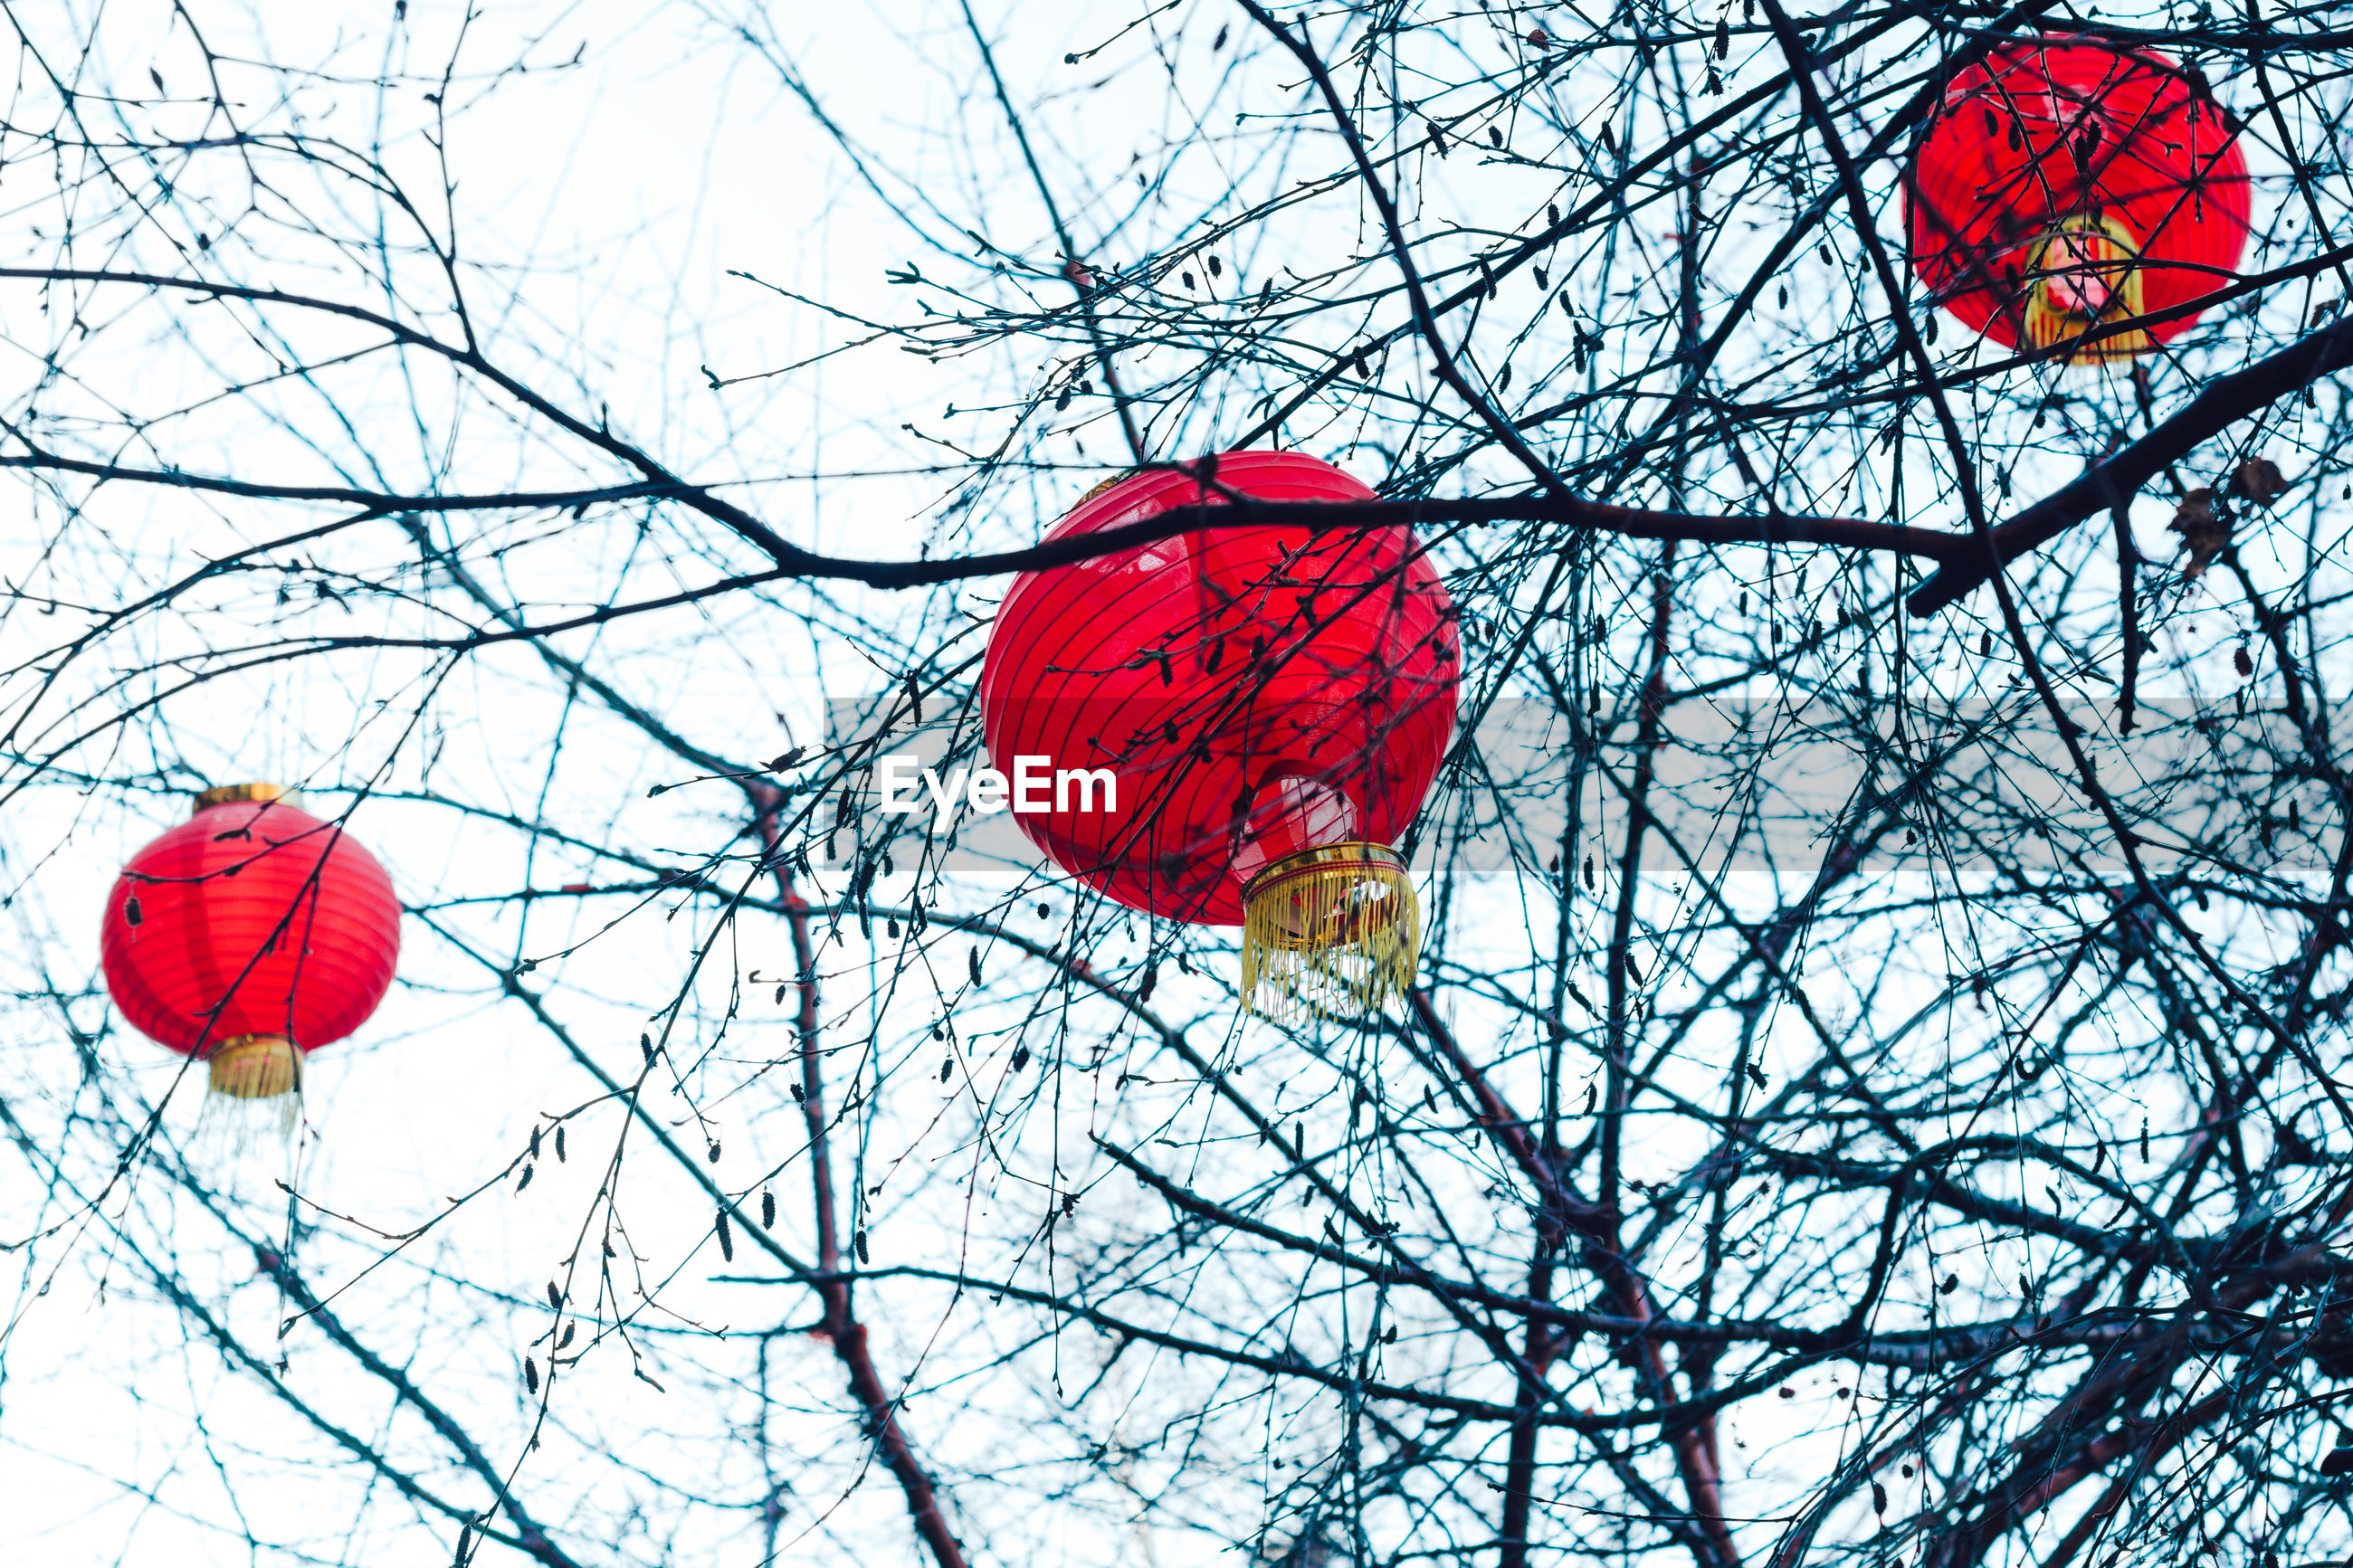 Low angle view of red lantern hanging on tree against sky